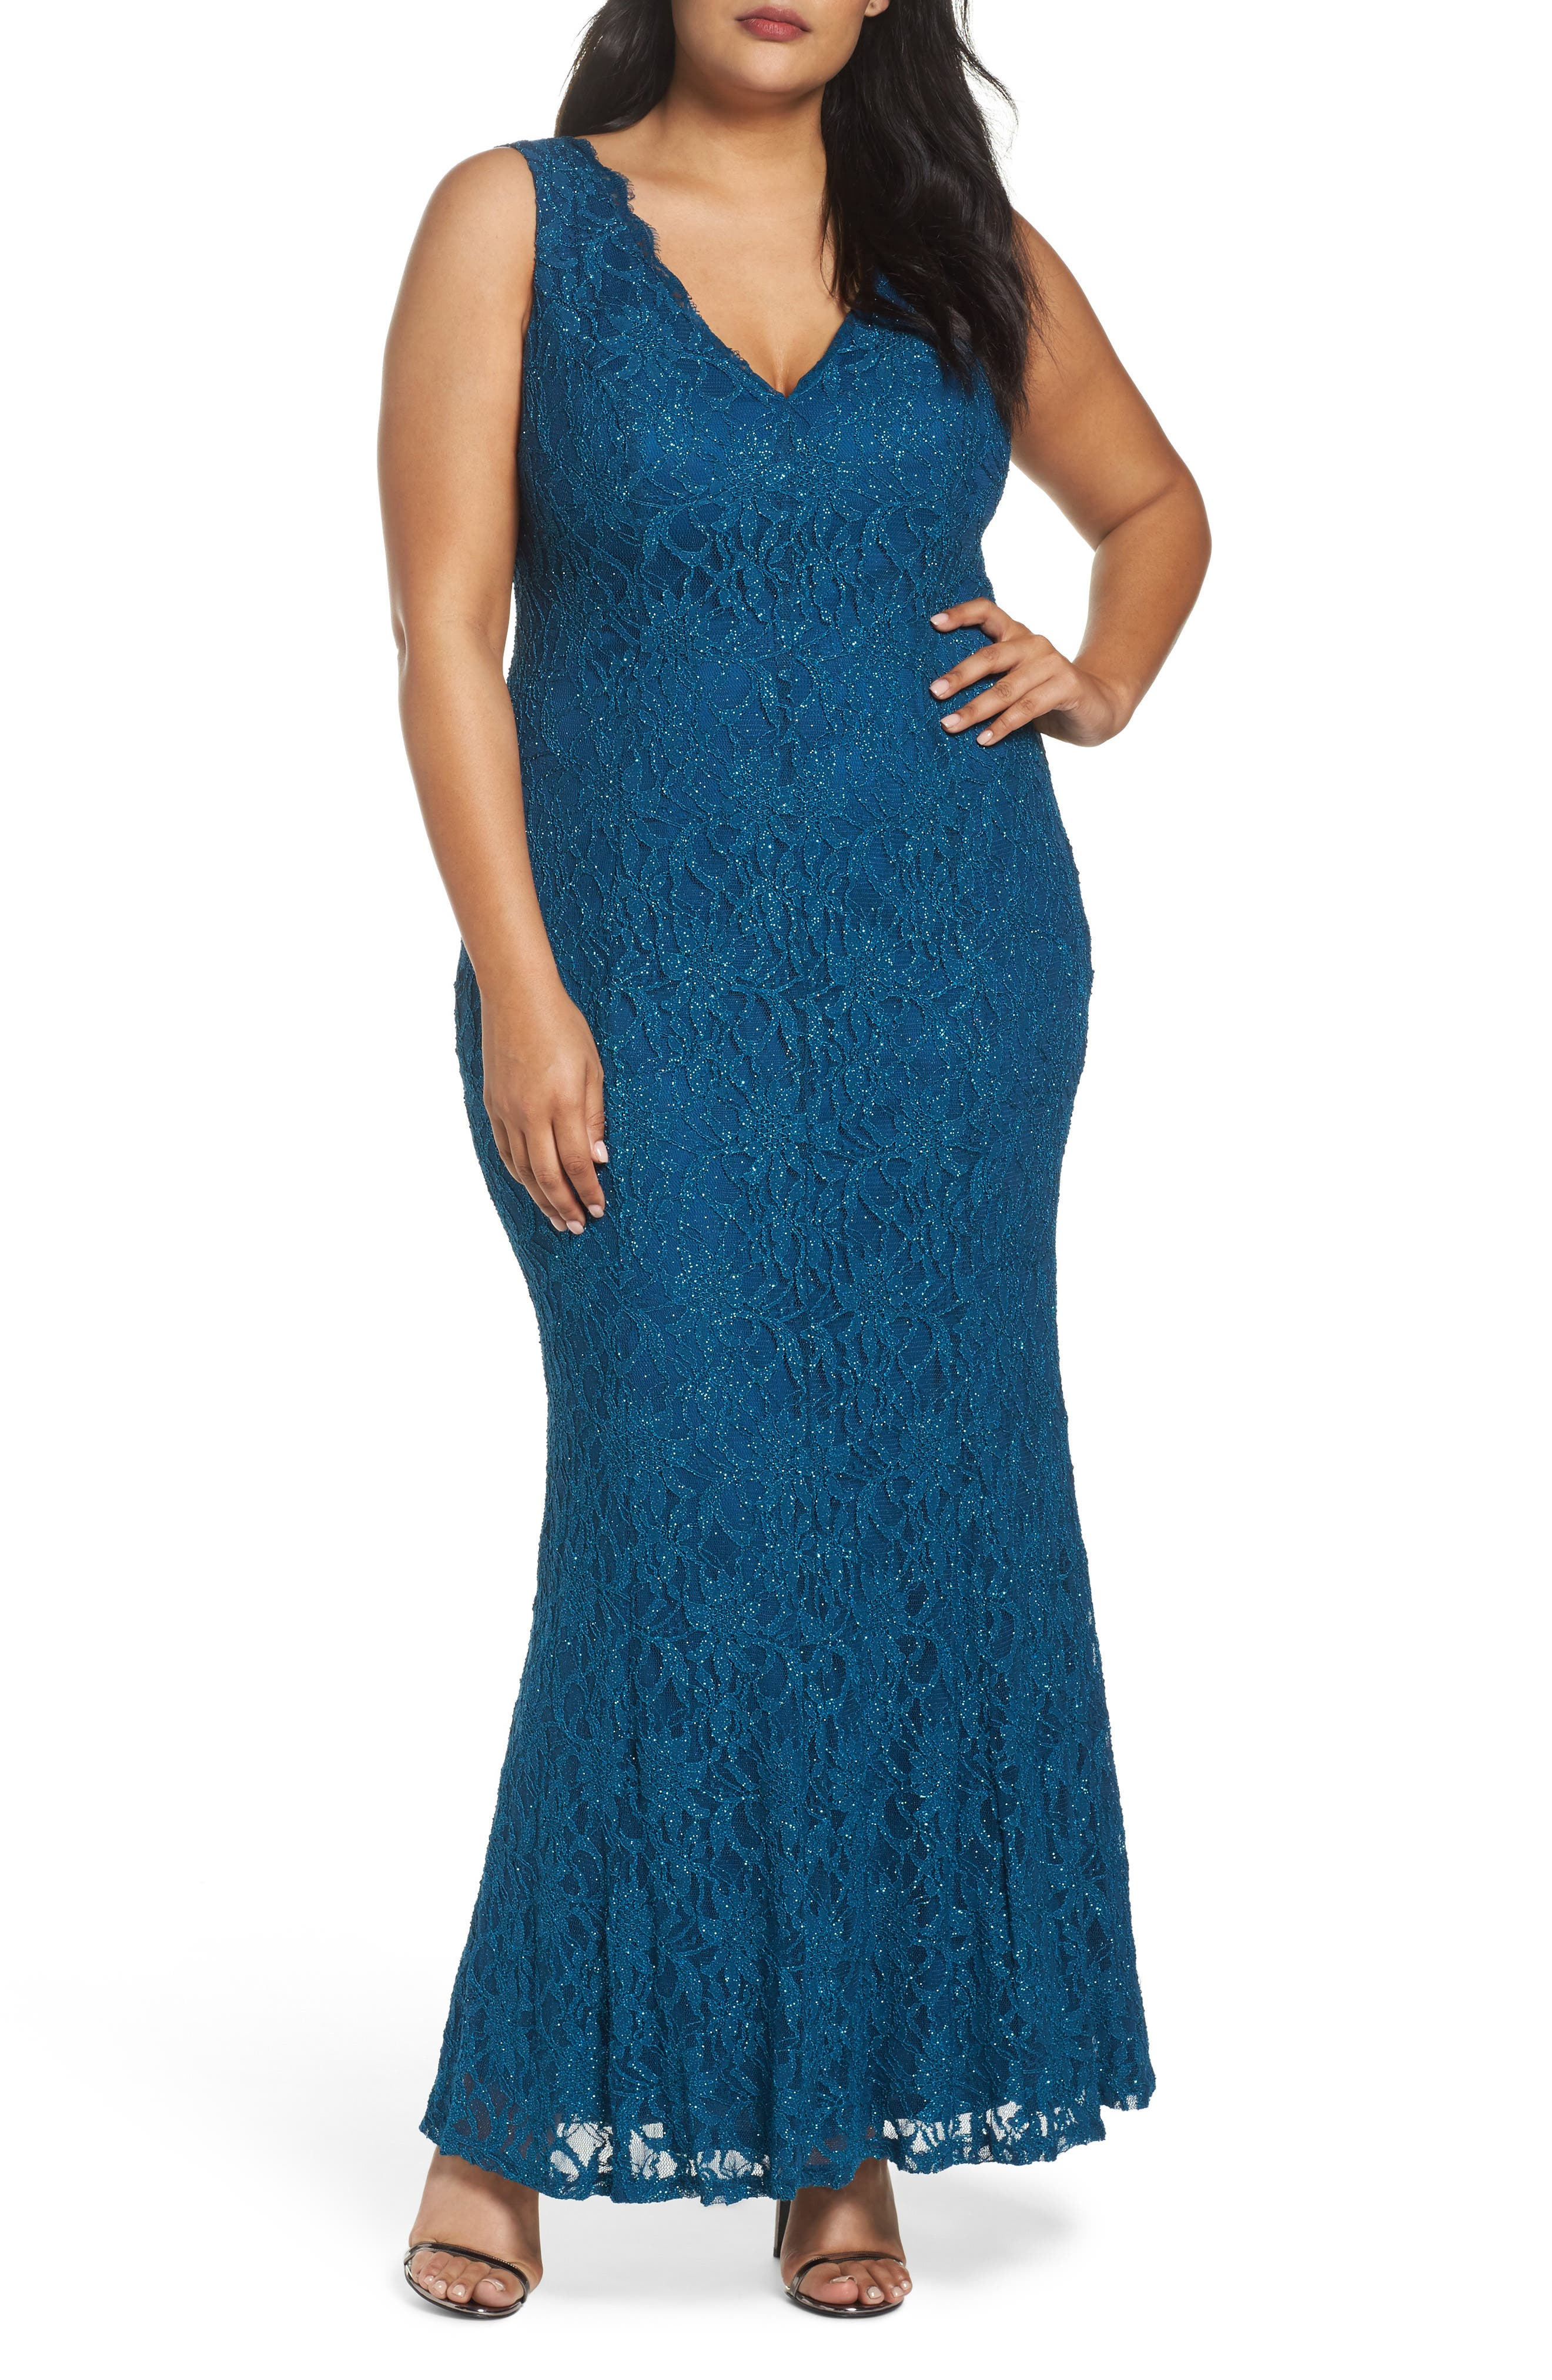 Alternate Image 1 Selected - DECODE 1.8 Illusion Lace A-Line Gown (Plus Size)